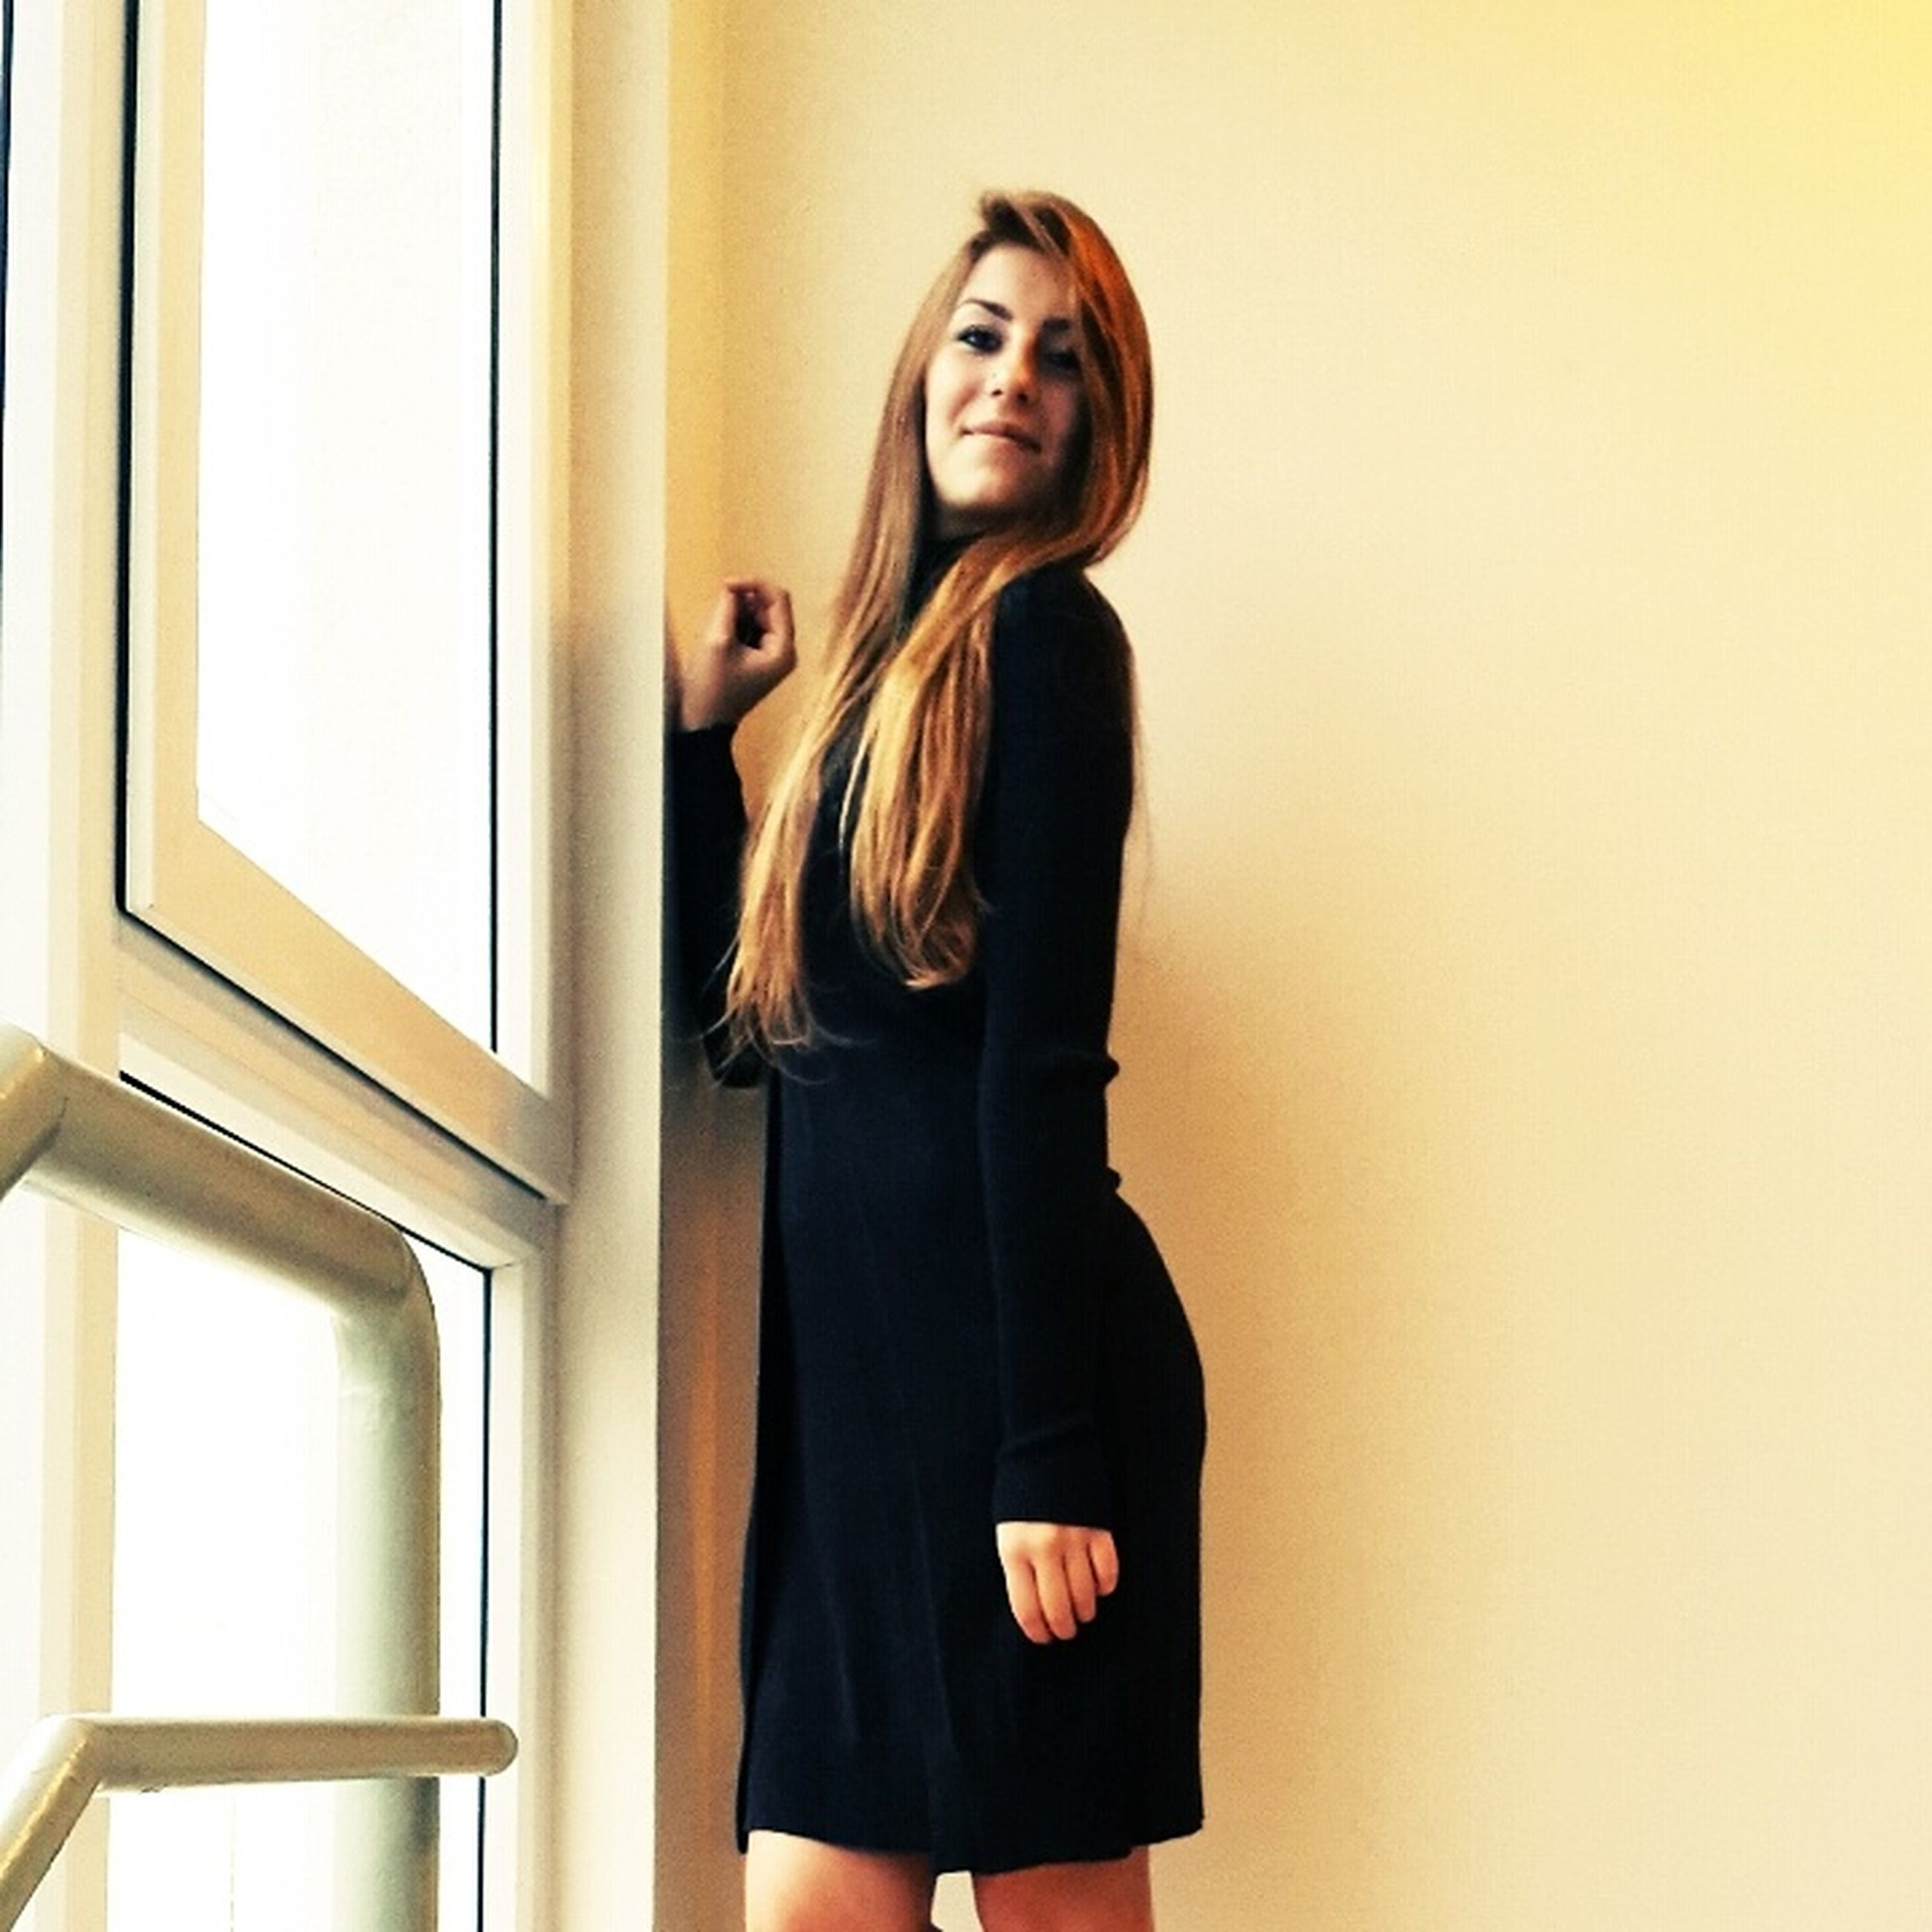 young adult, young women, standing, lifestyles, long hair, indoors, front view, three quarter length, person, casual clothing, portrait, looking at camera, leisure activity, wall - building feature, beauty, waist up, sensuality